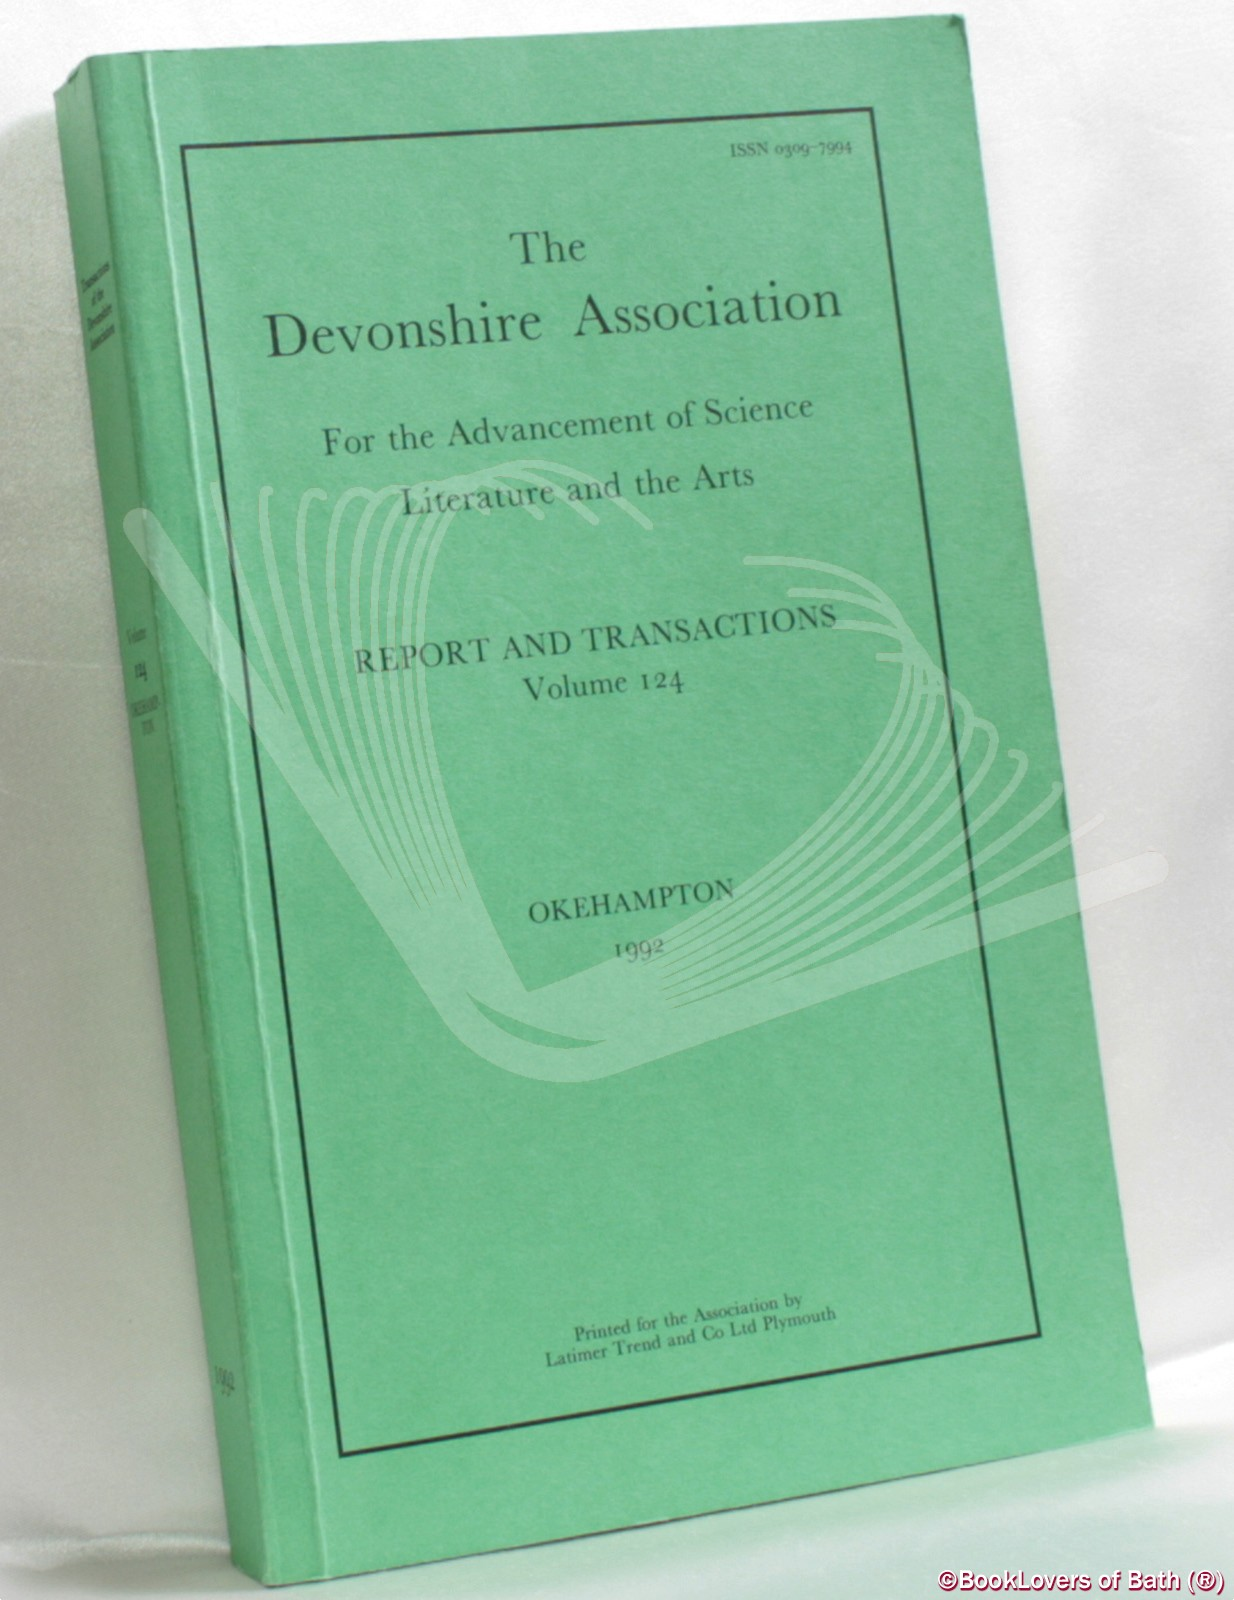 The Devonshire Association for the Advancement of Science, Literature and Art: Reports & Transactions Volume 124 Okehampton 1992 - Anon.